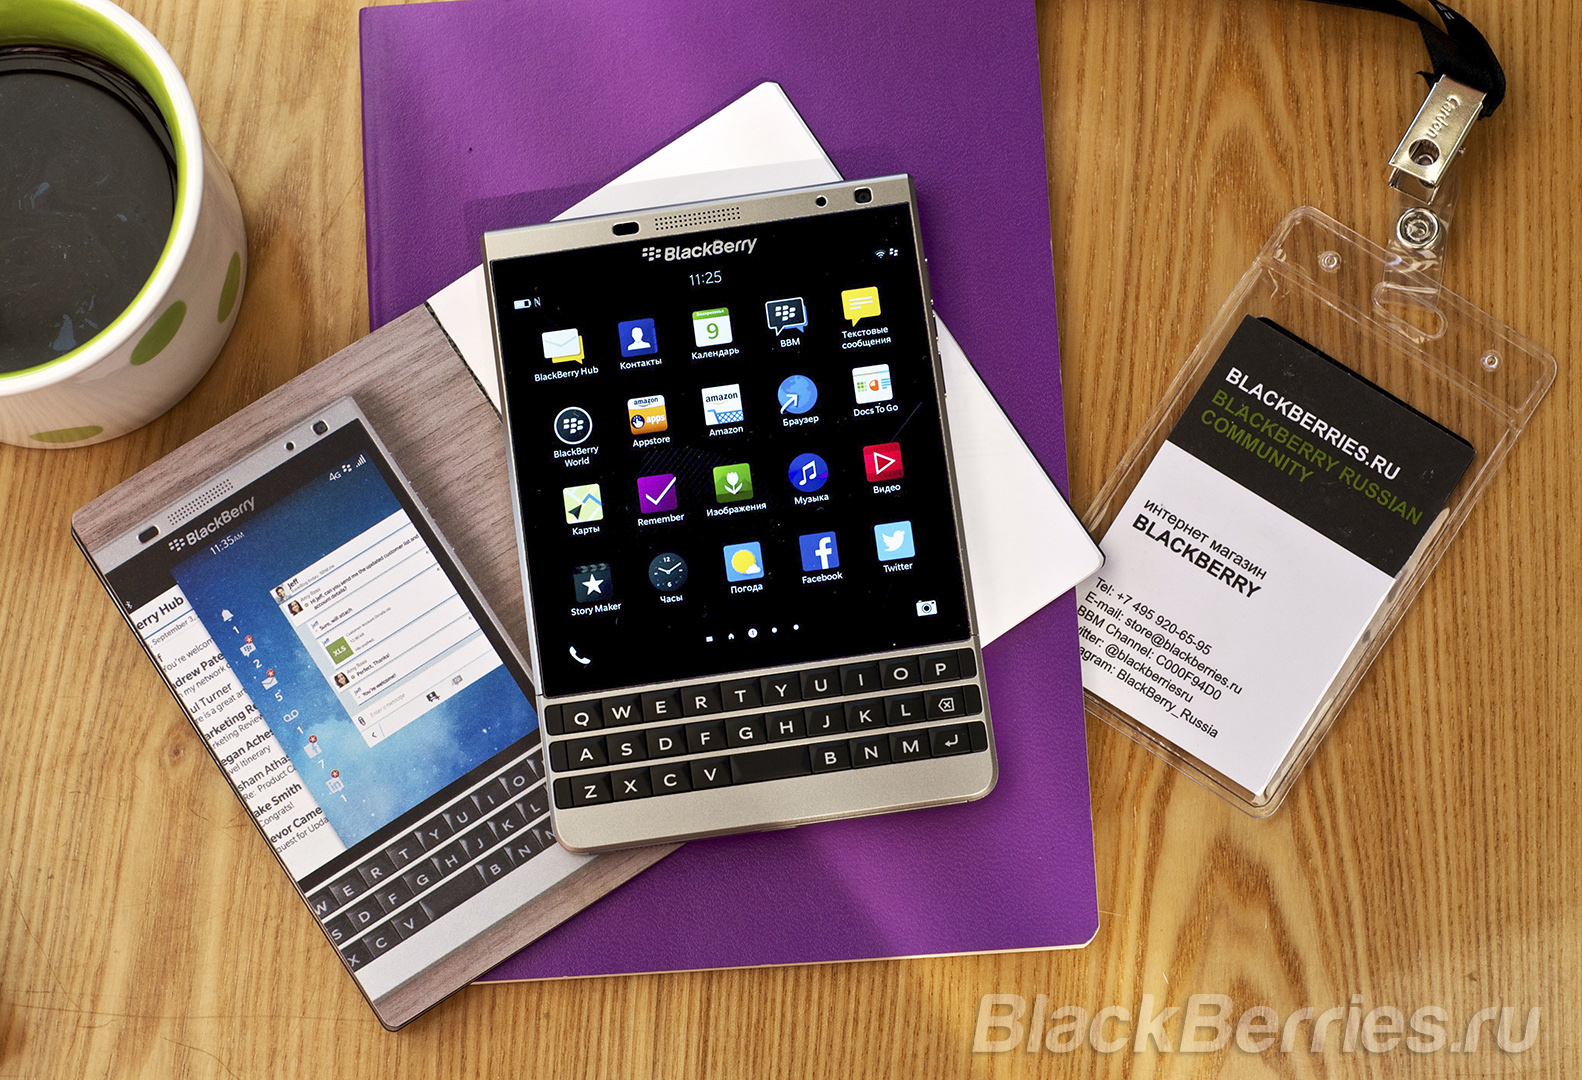 BlackBerry-Passport-Silver-Edition-Review-28